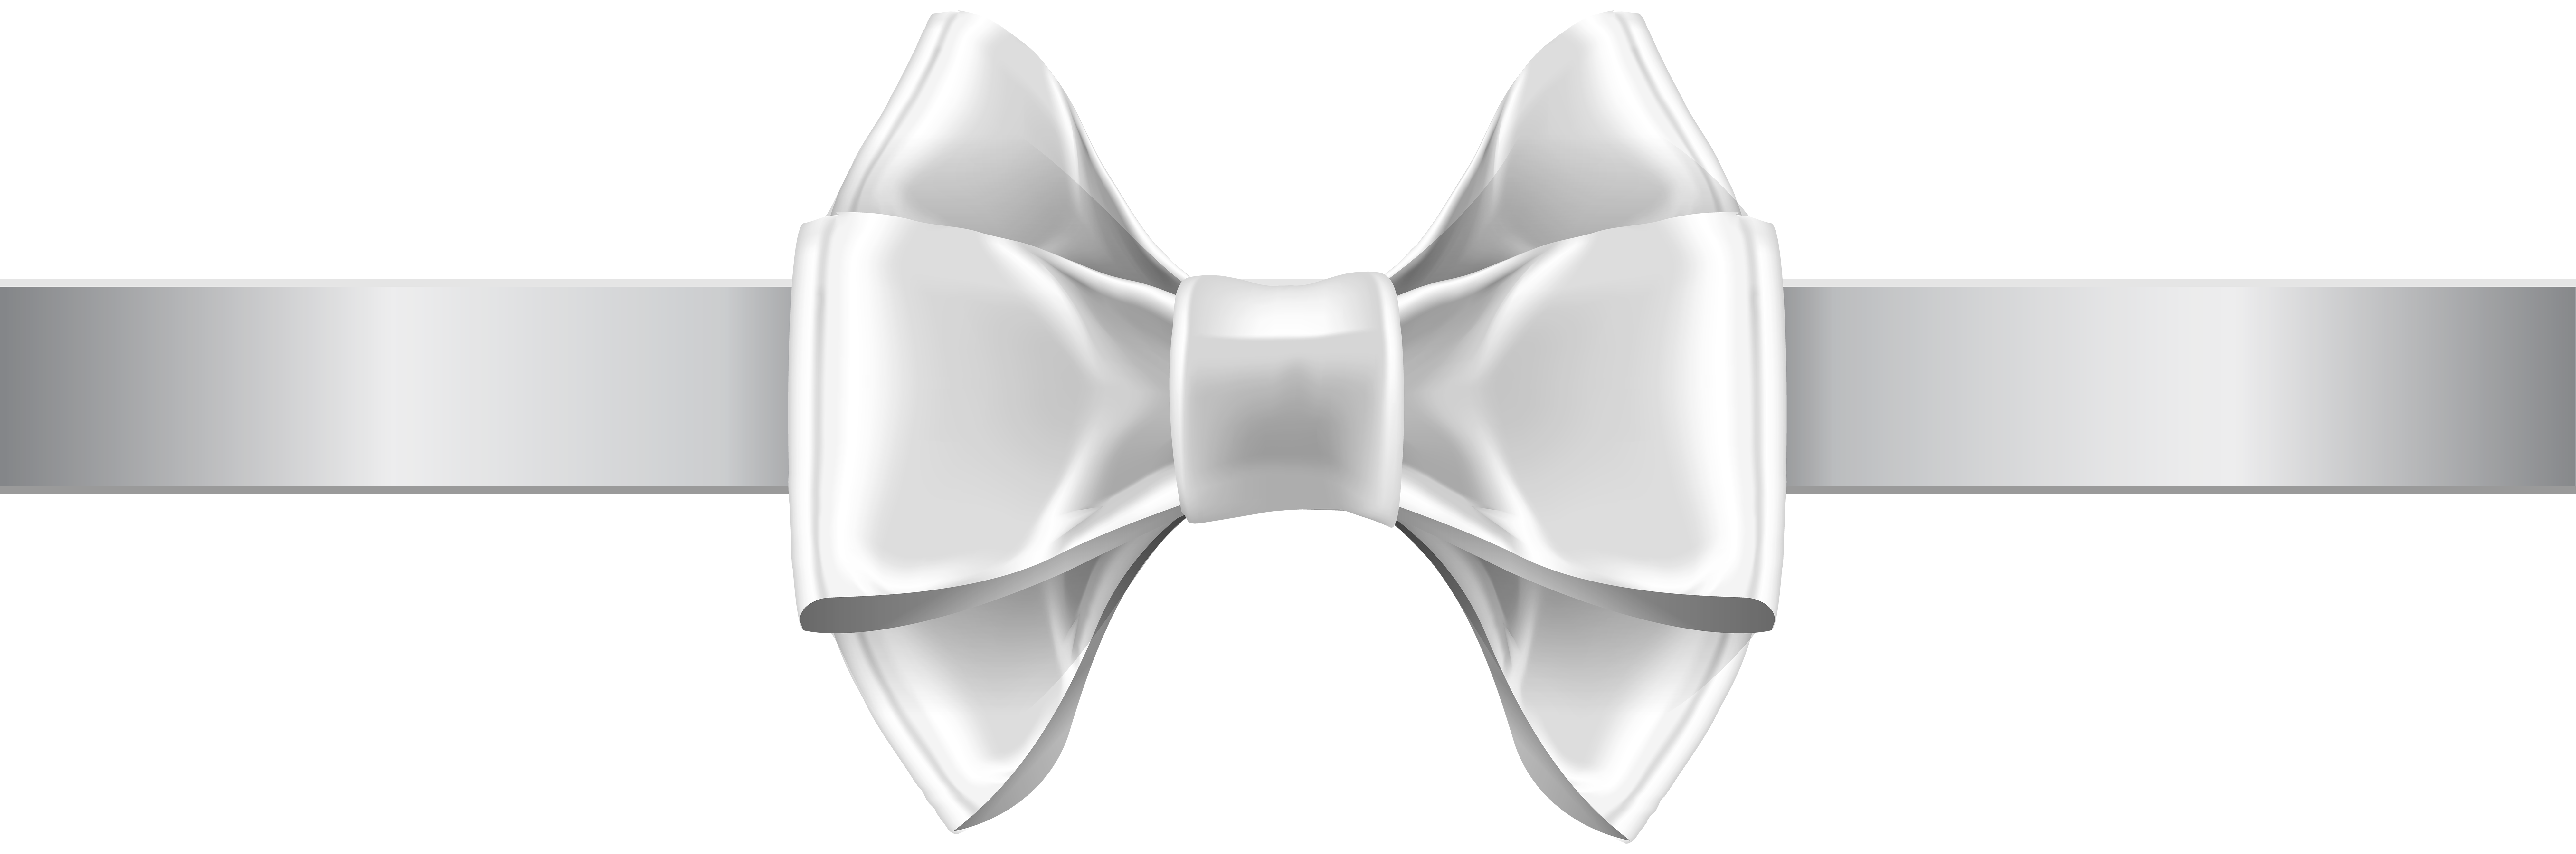 White bow png art. Silver clip black tie clipart free stock